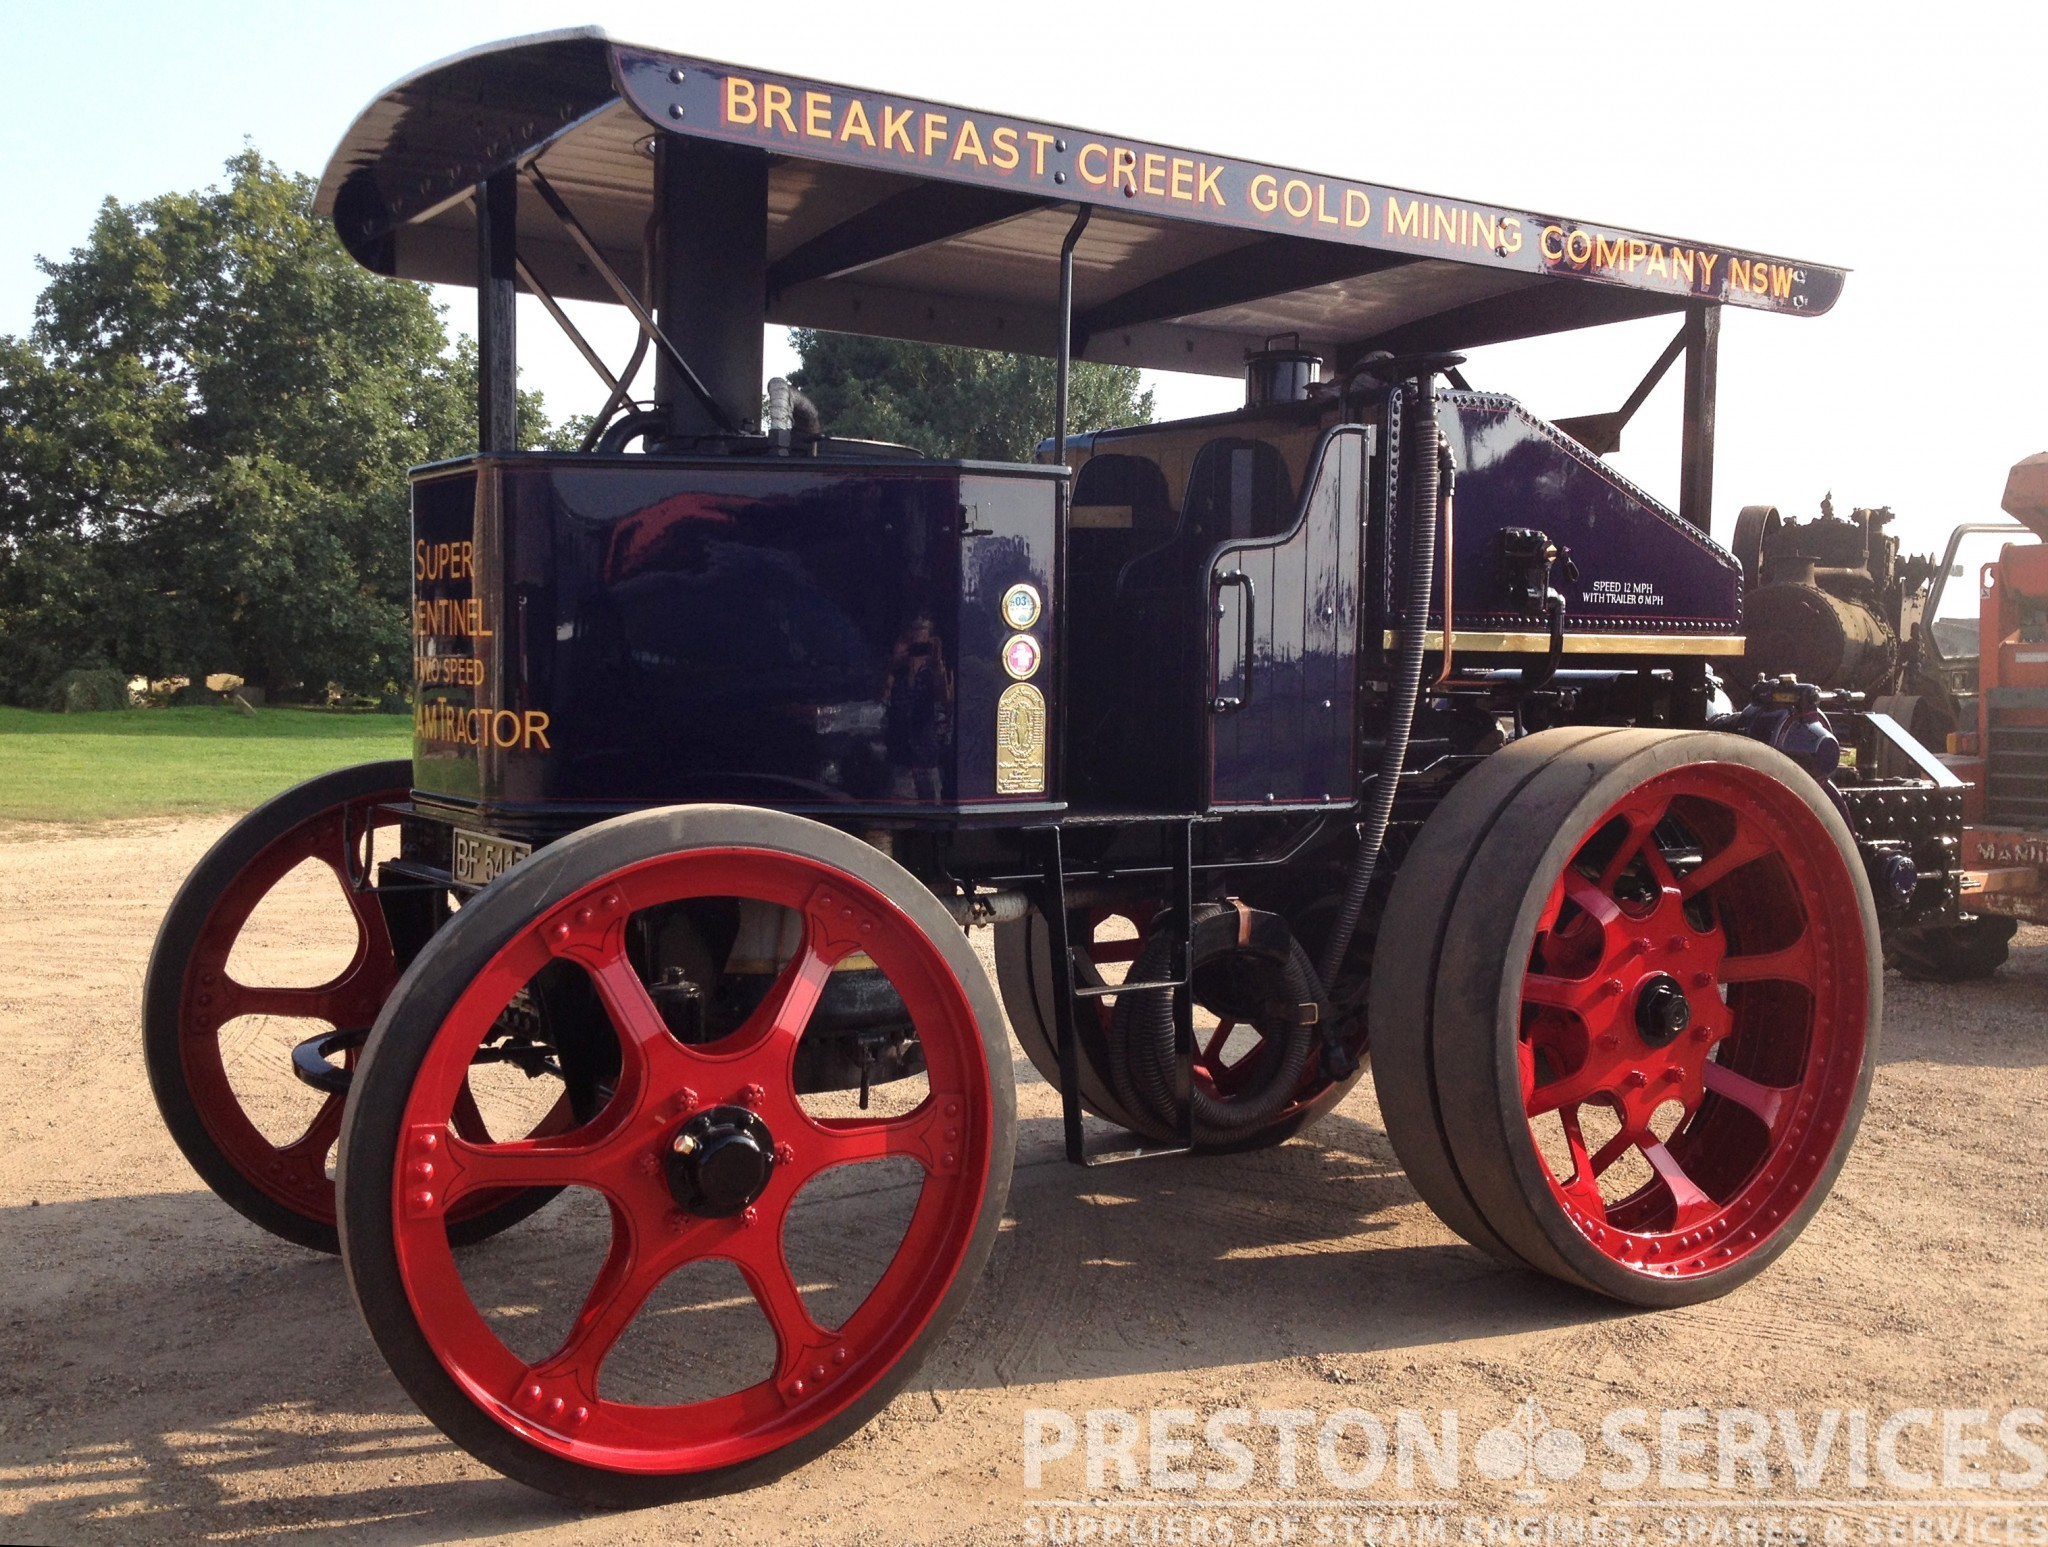 Steam Engines For Sale Archives Page 14 of 42 PRESTON SERVICES